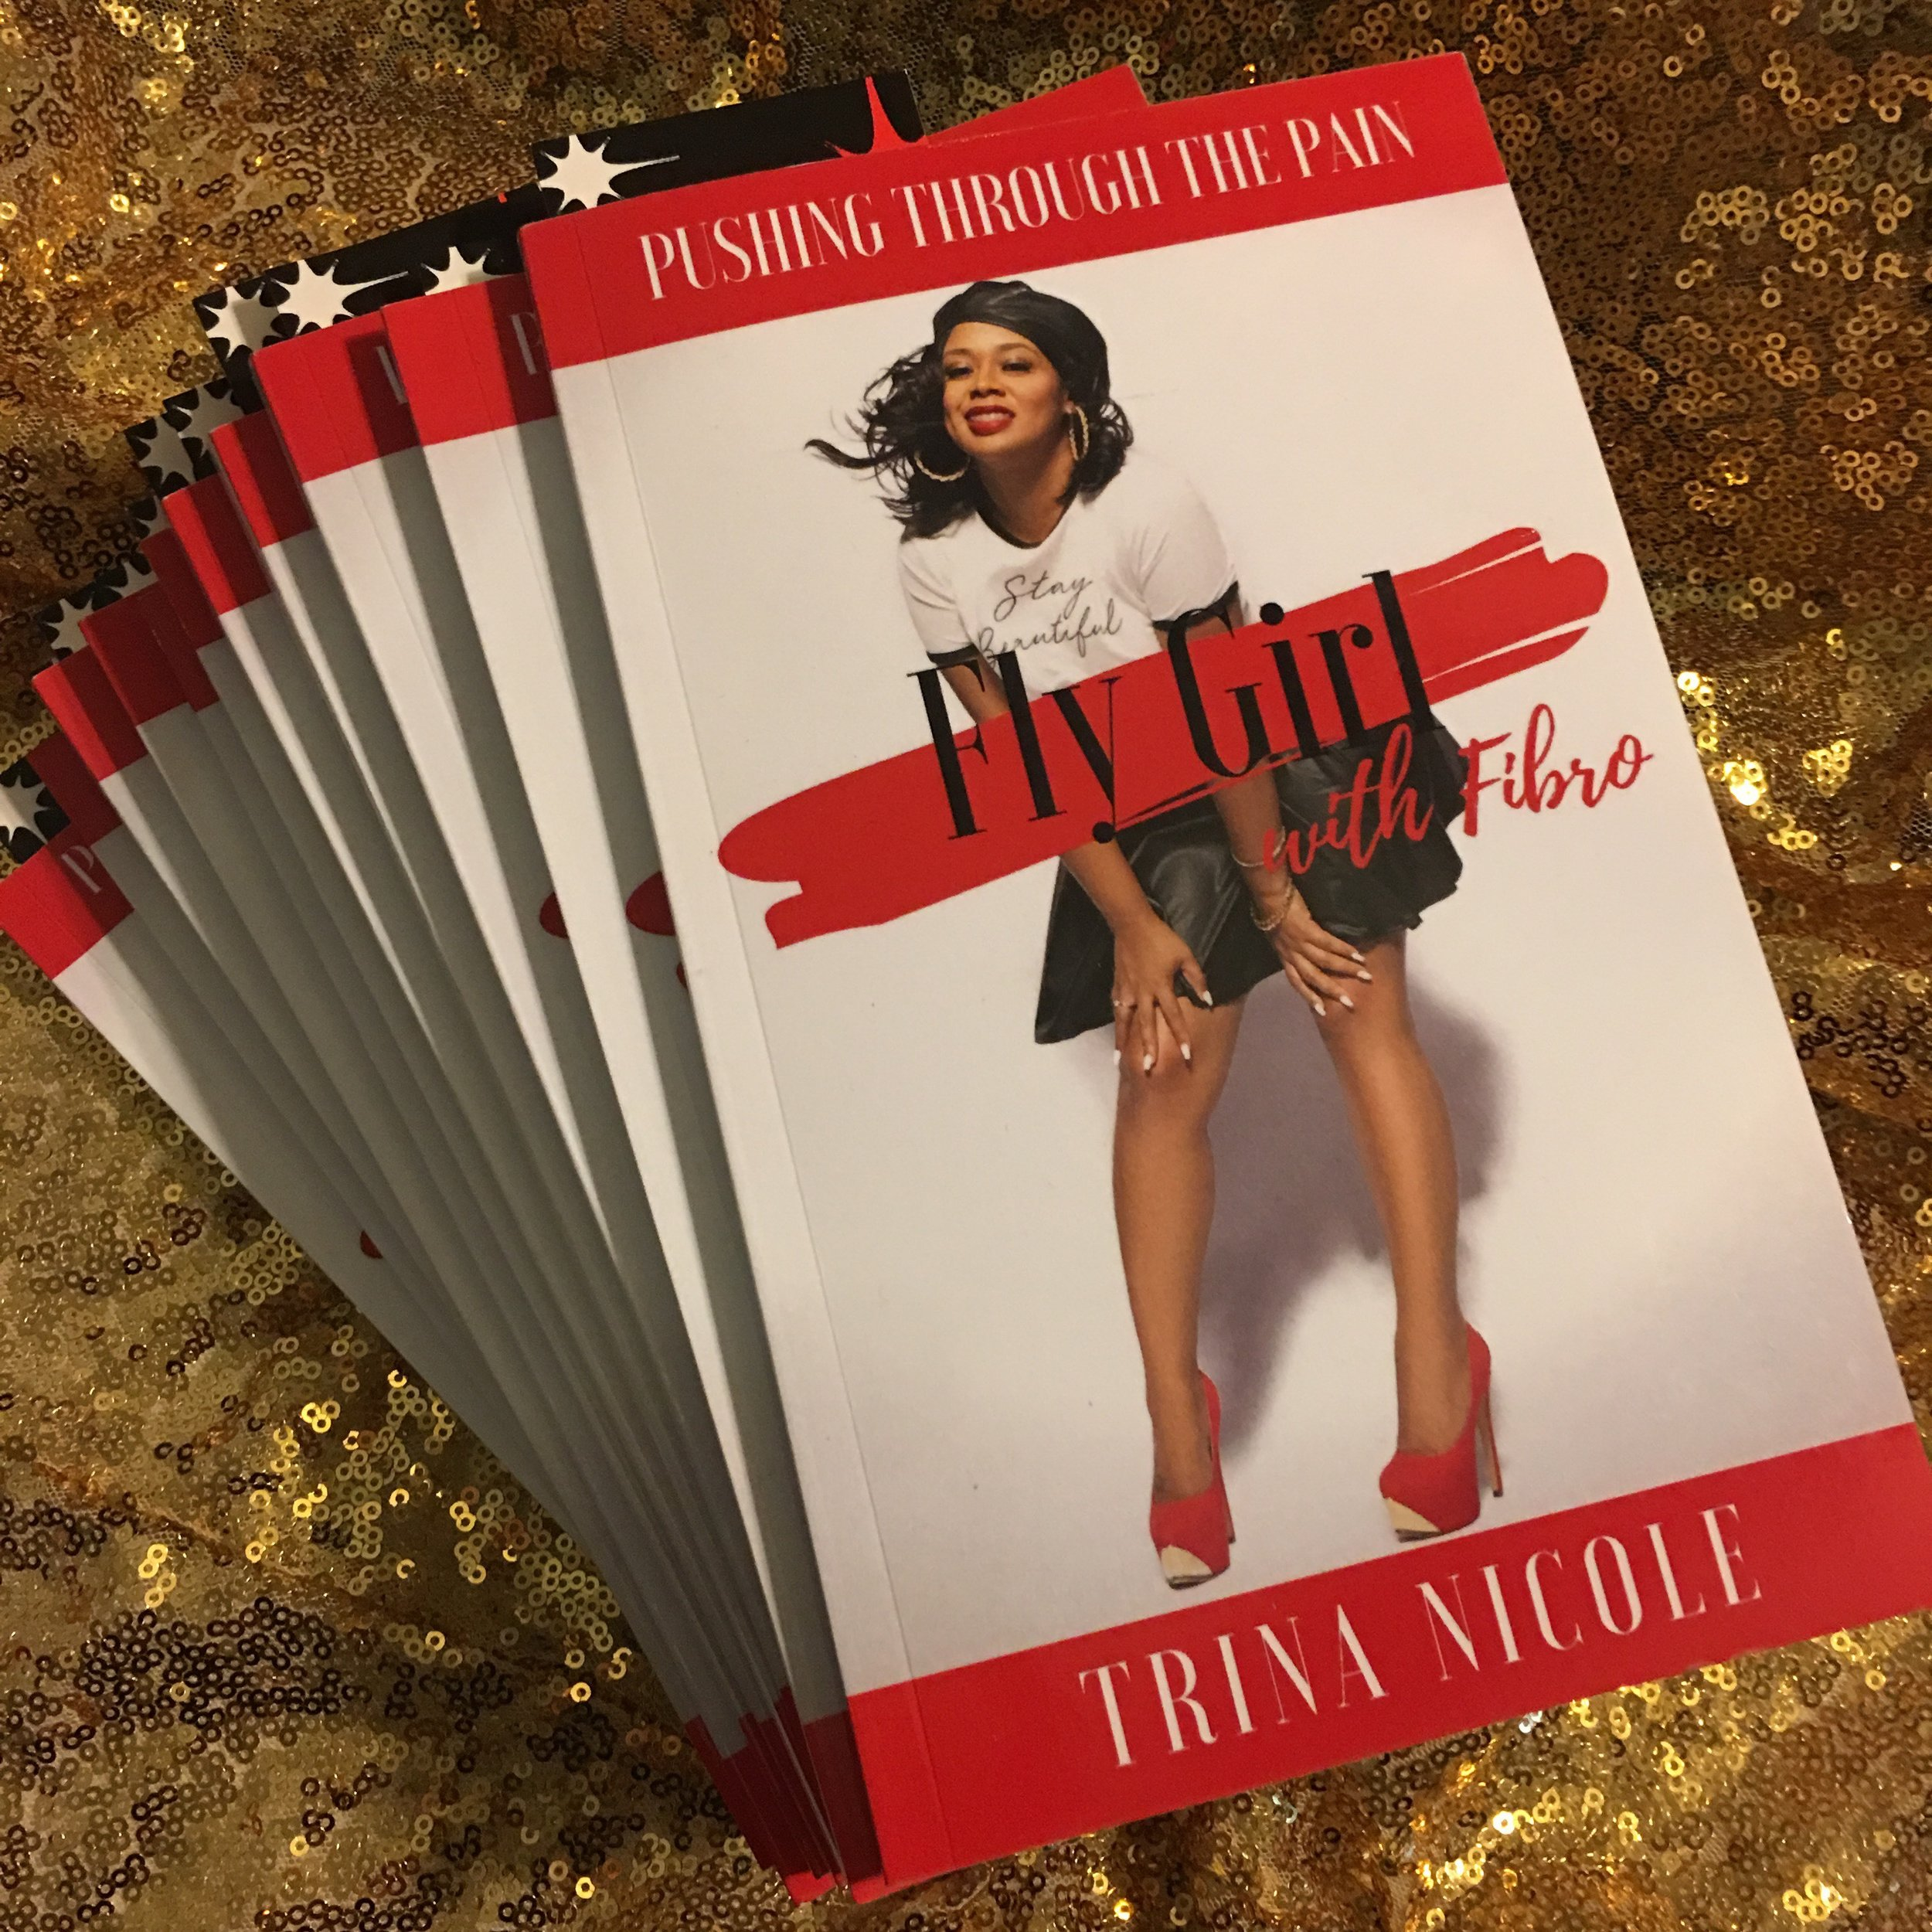 Trina Nicole's book Fly Girl with Fibro. (Picture provided by Trina Nicole)